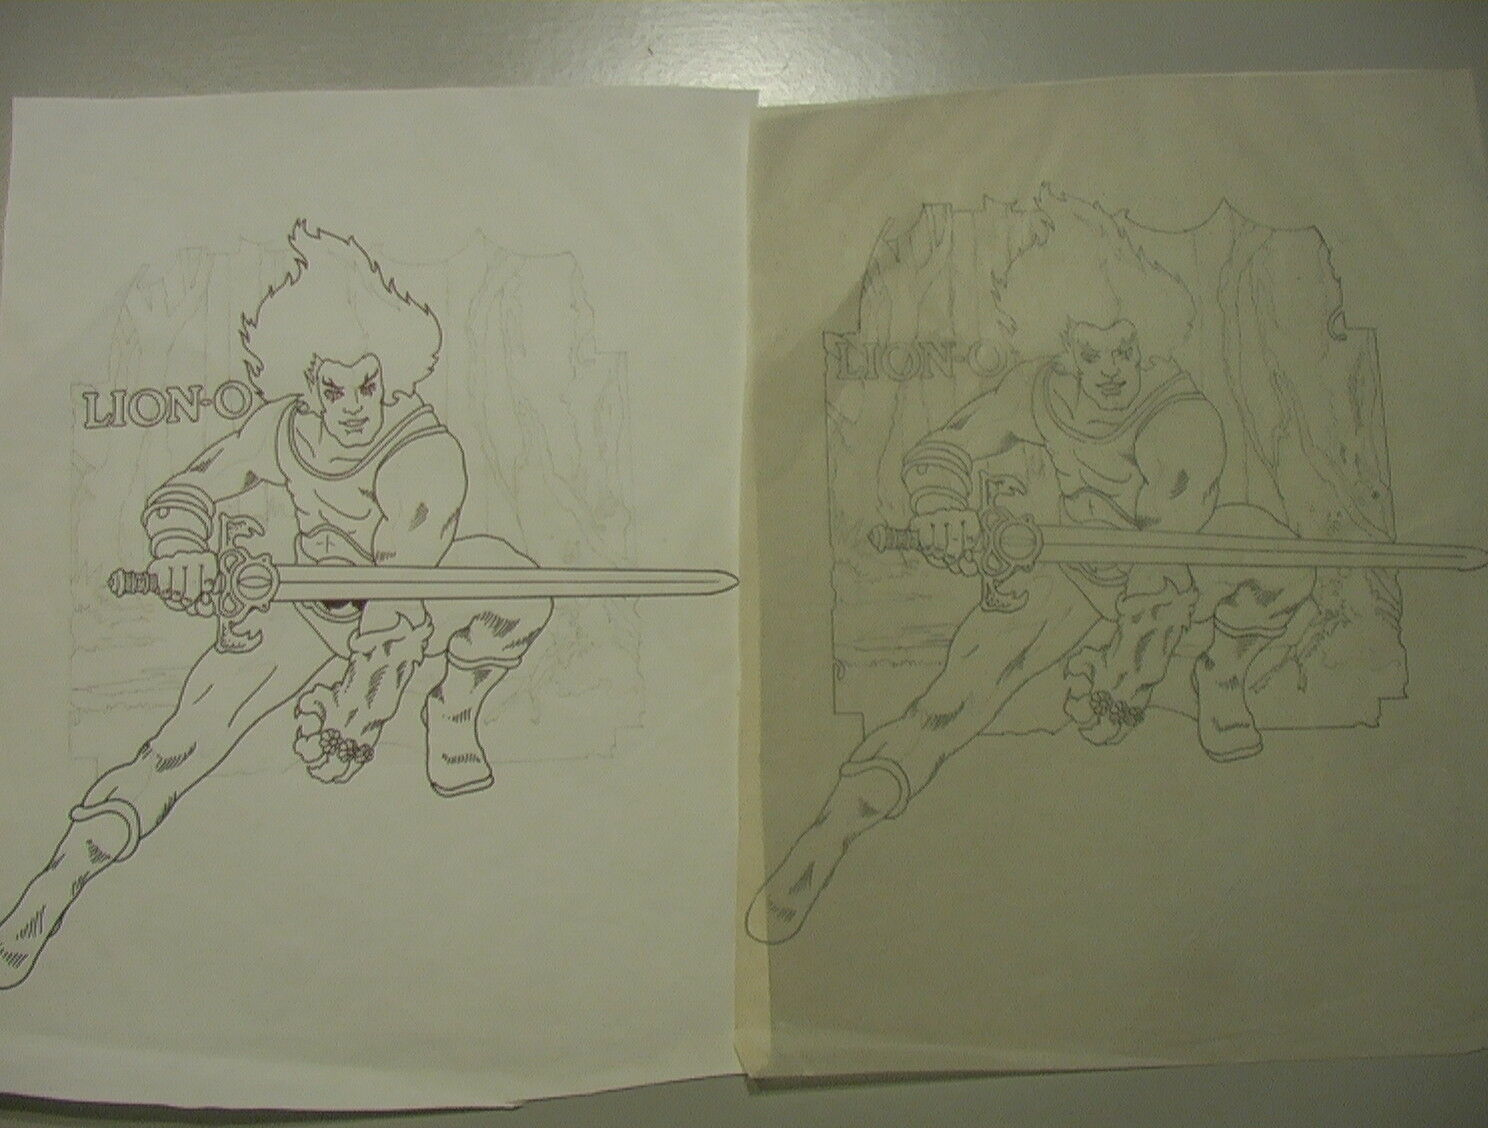 Thundercats VINTAGE 1985 Lion-O INDUSTRY INDUSTRY INDUSTRY Hand Traced Art 8.5